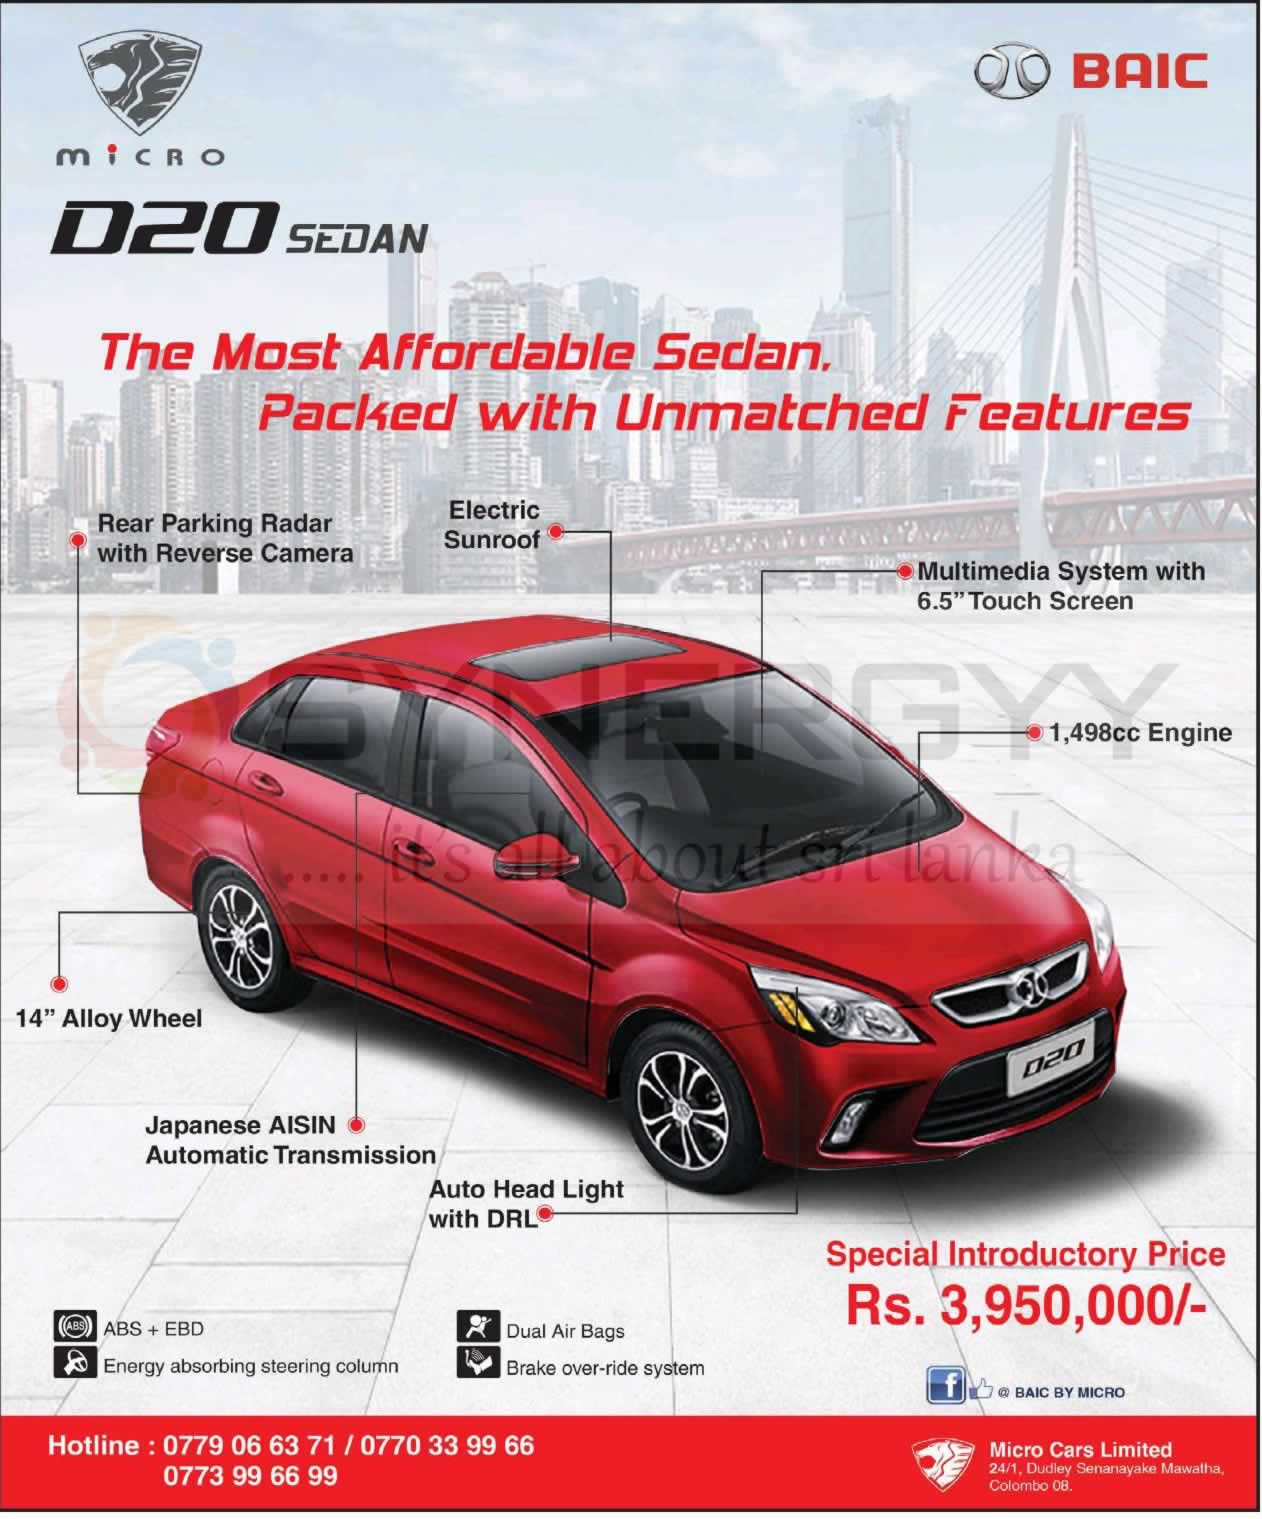 Baic D20 Sedan By Micro In Sri Lanka Prices Starting From Rs